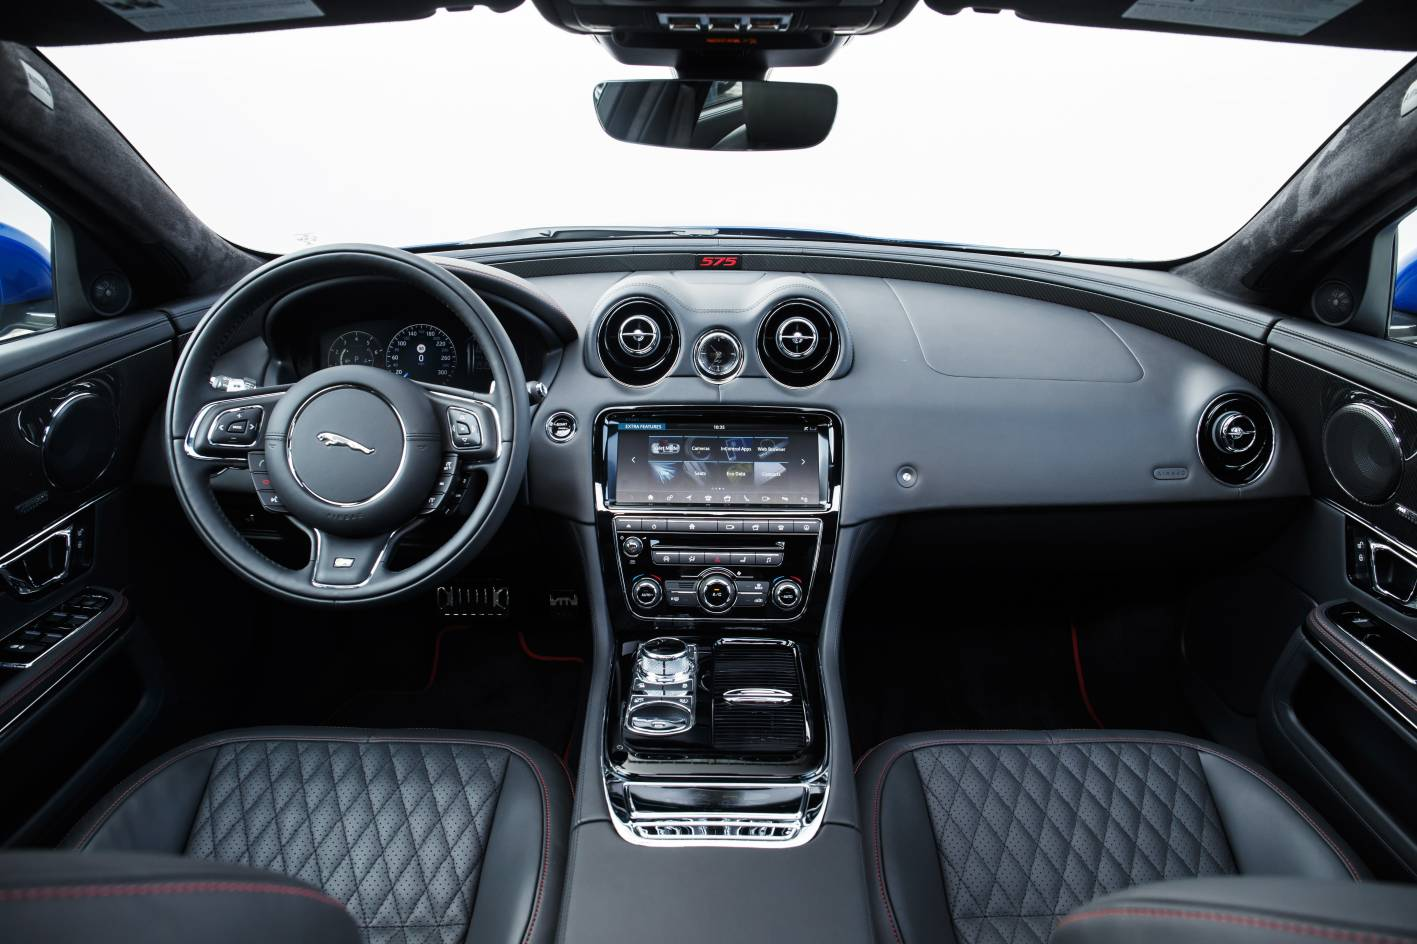 2018 jaguar xj interior.  jaguar for 2018my the xj features a number of technology upgrades which enhance  connectivity with 4g wifi capability allowing occupants to stay online on  in 2018 jaguar xj interior